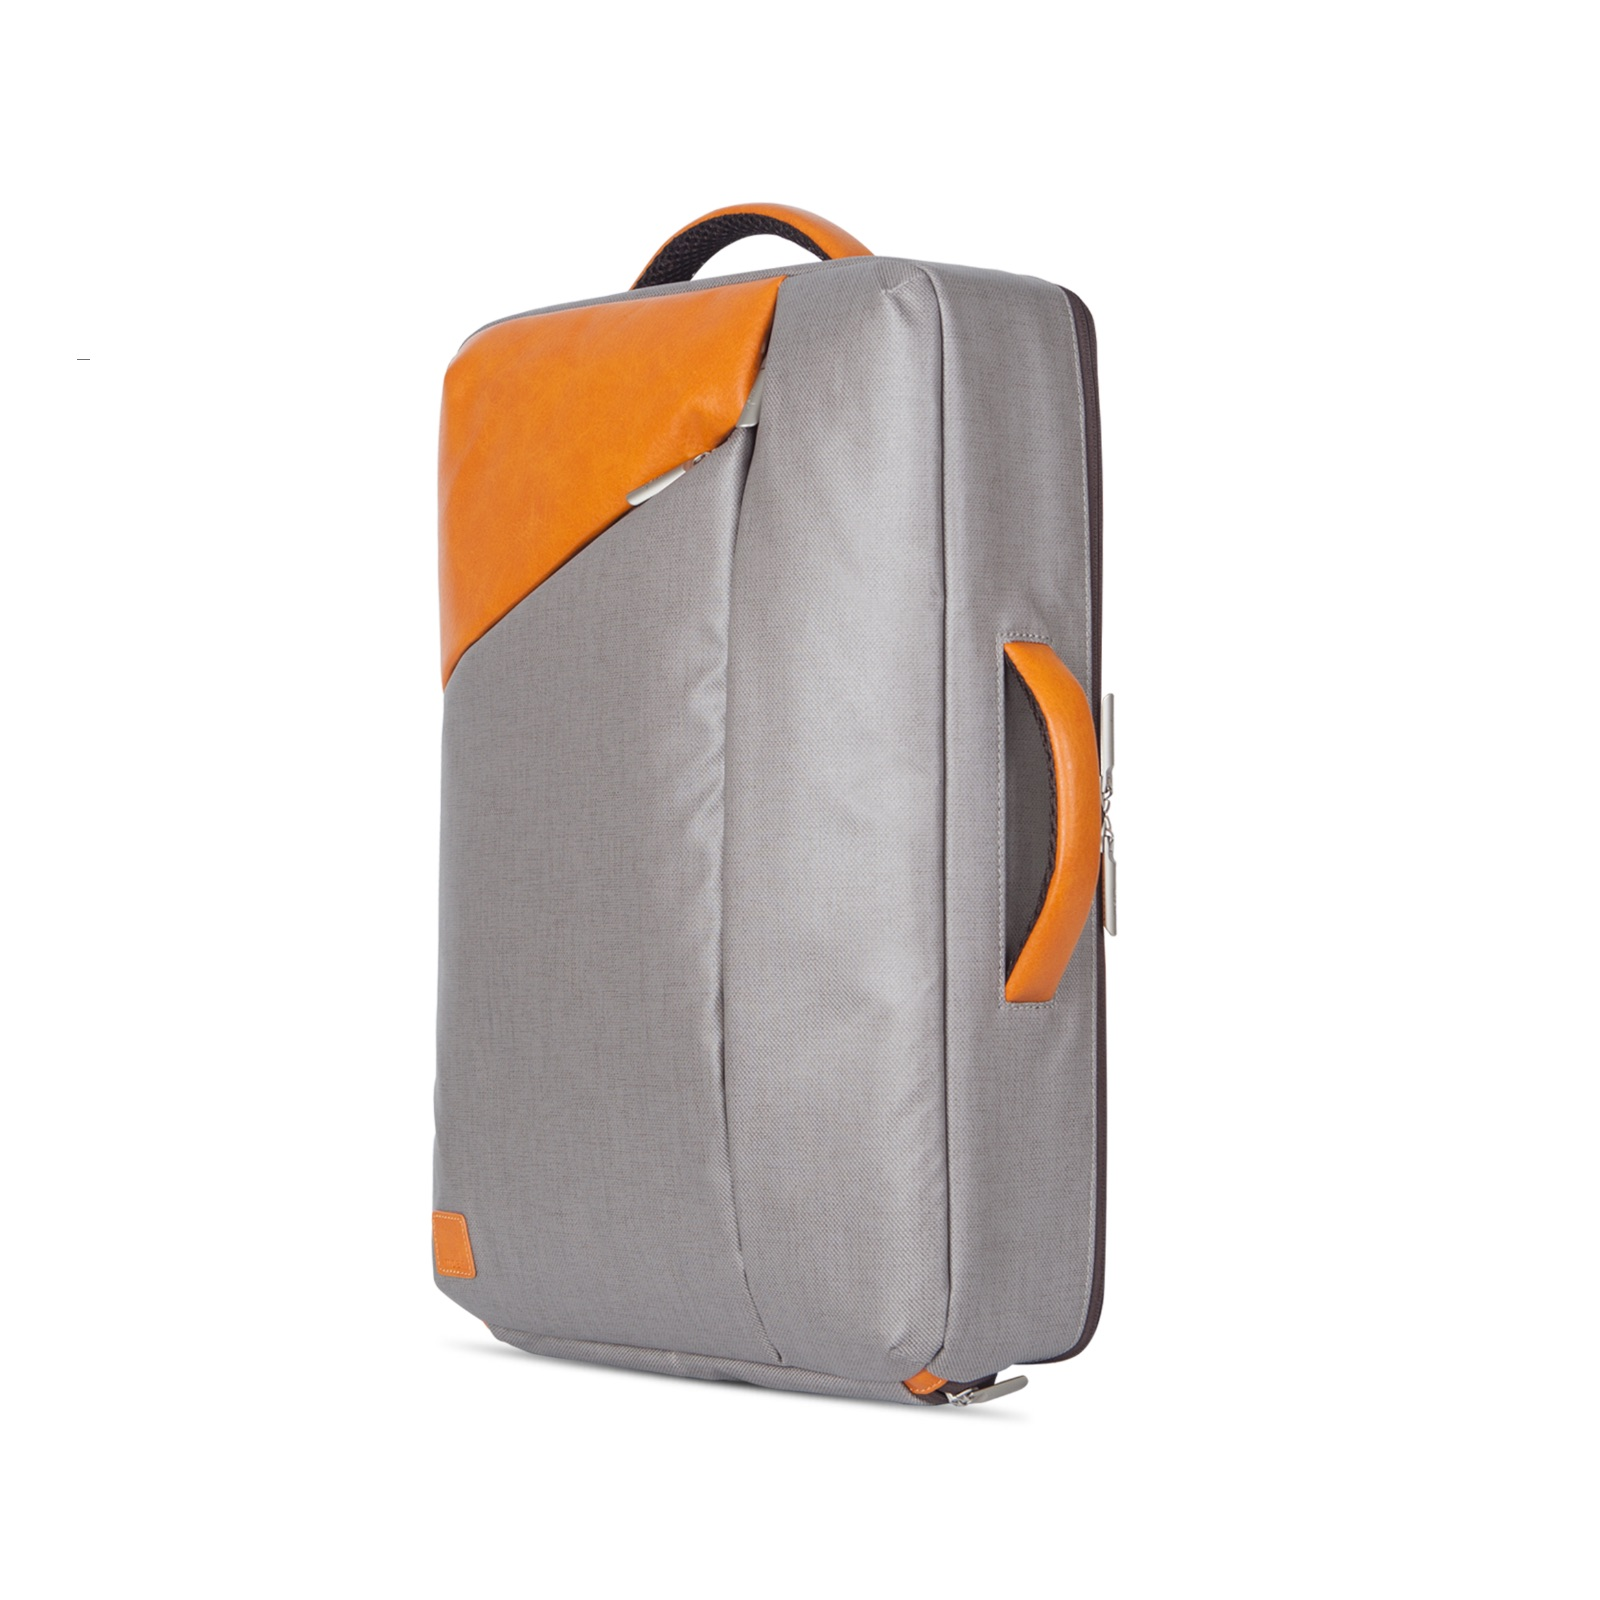 Venturo Slim Laptop Backpack-image